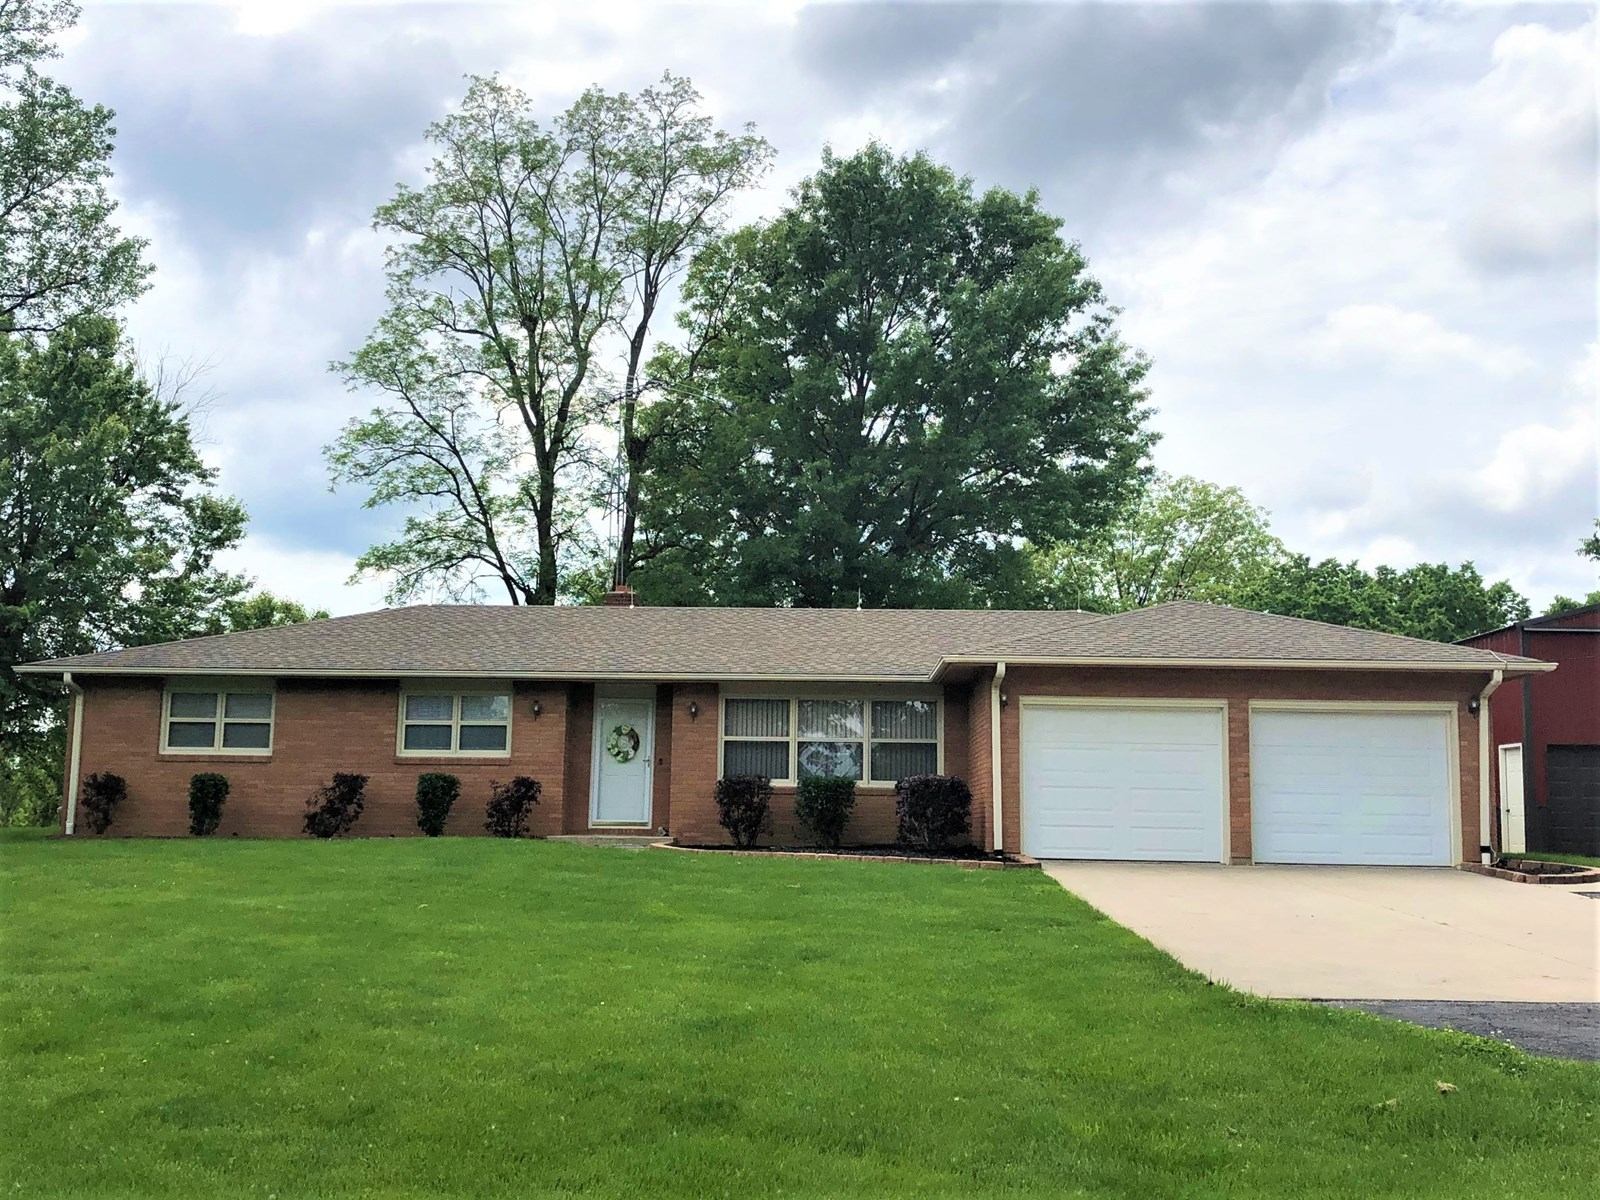 For Sale Brick Home With Building Livingston County